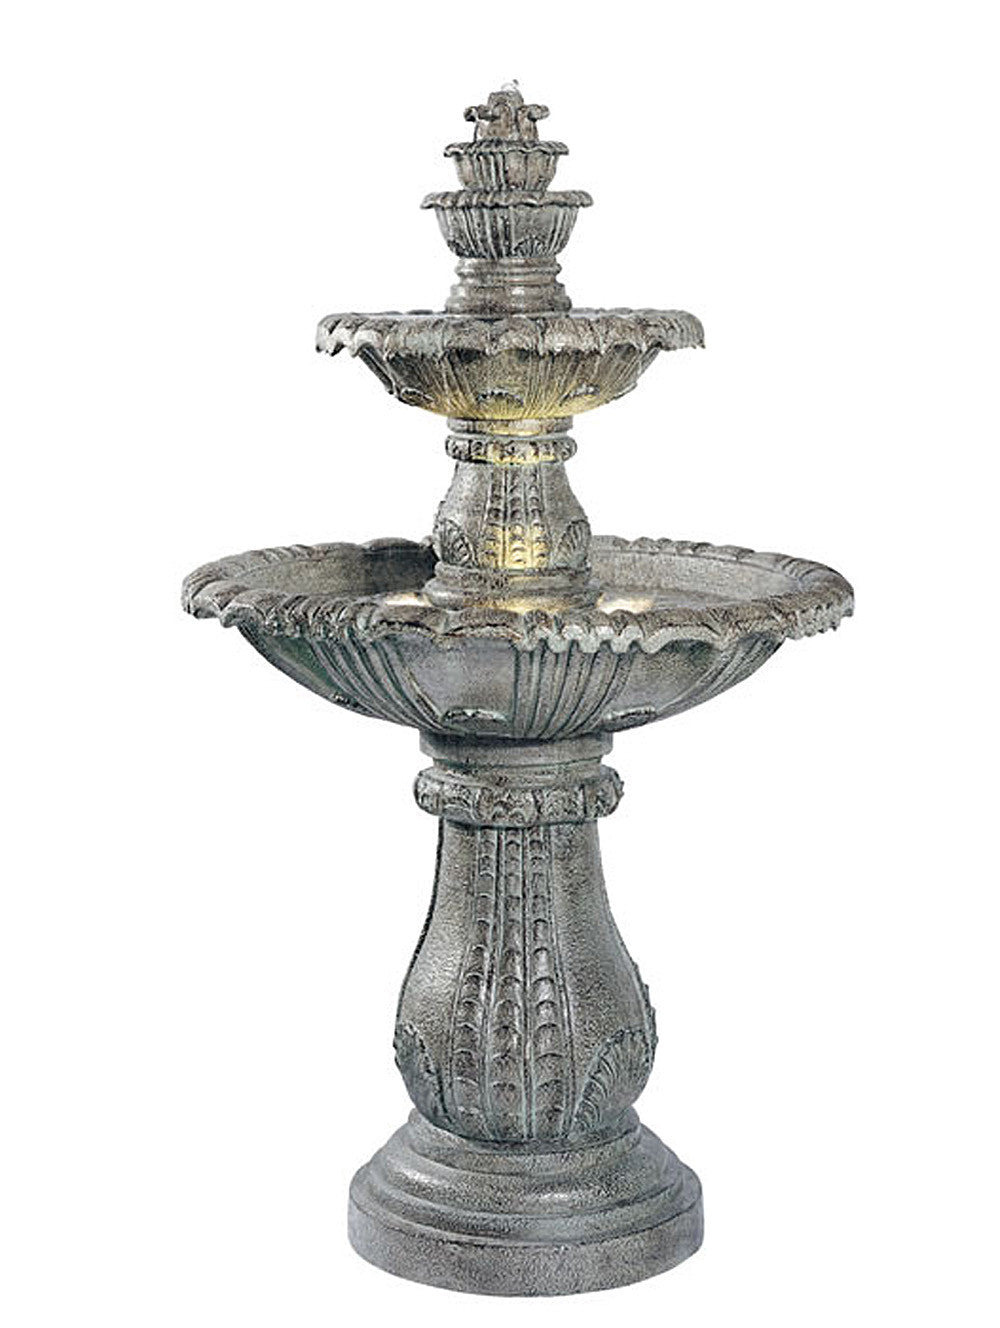 Venetian Outdoor Tiered Fountain